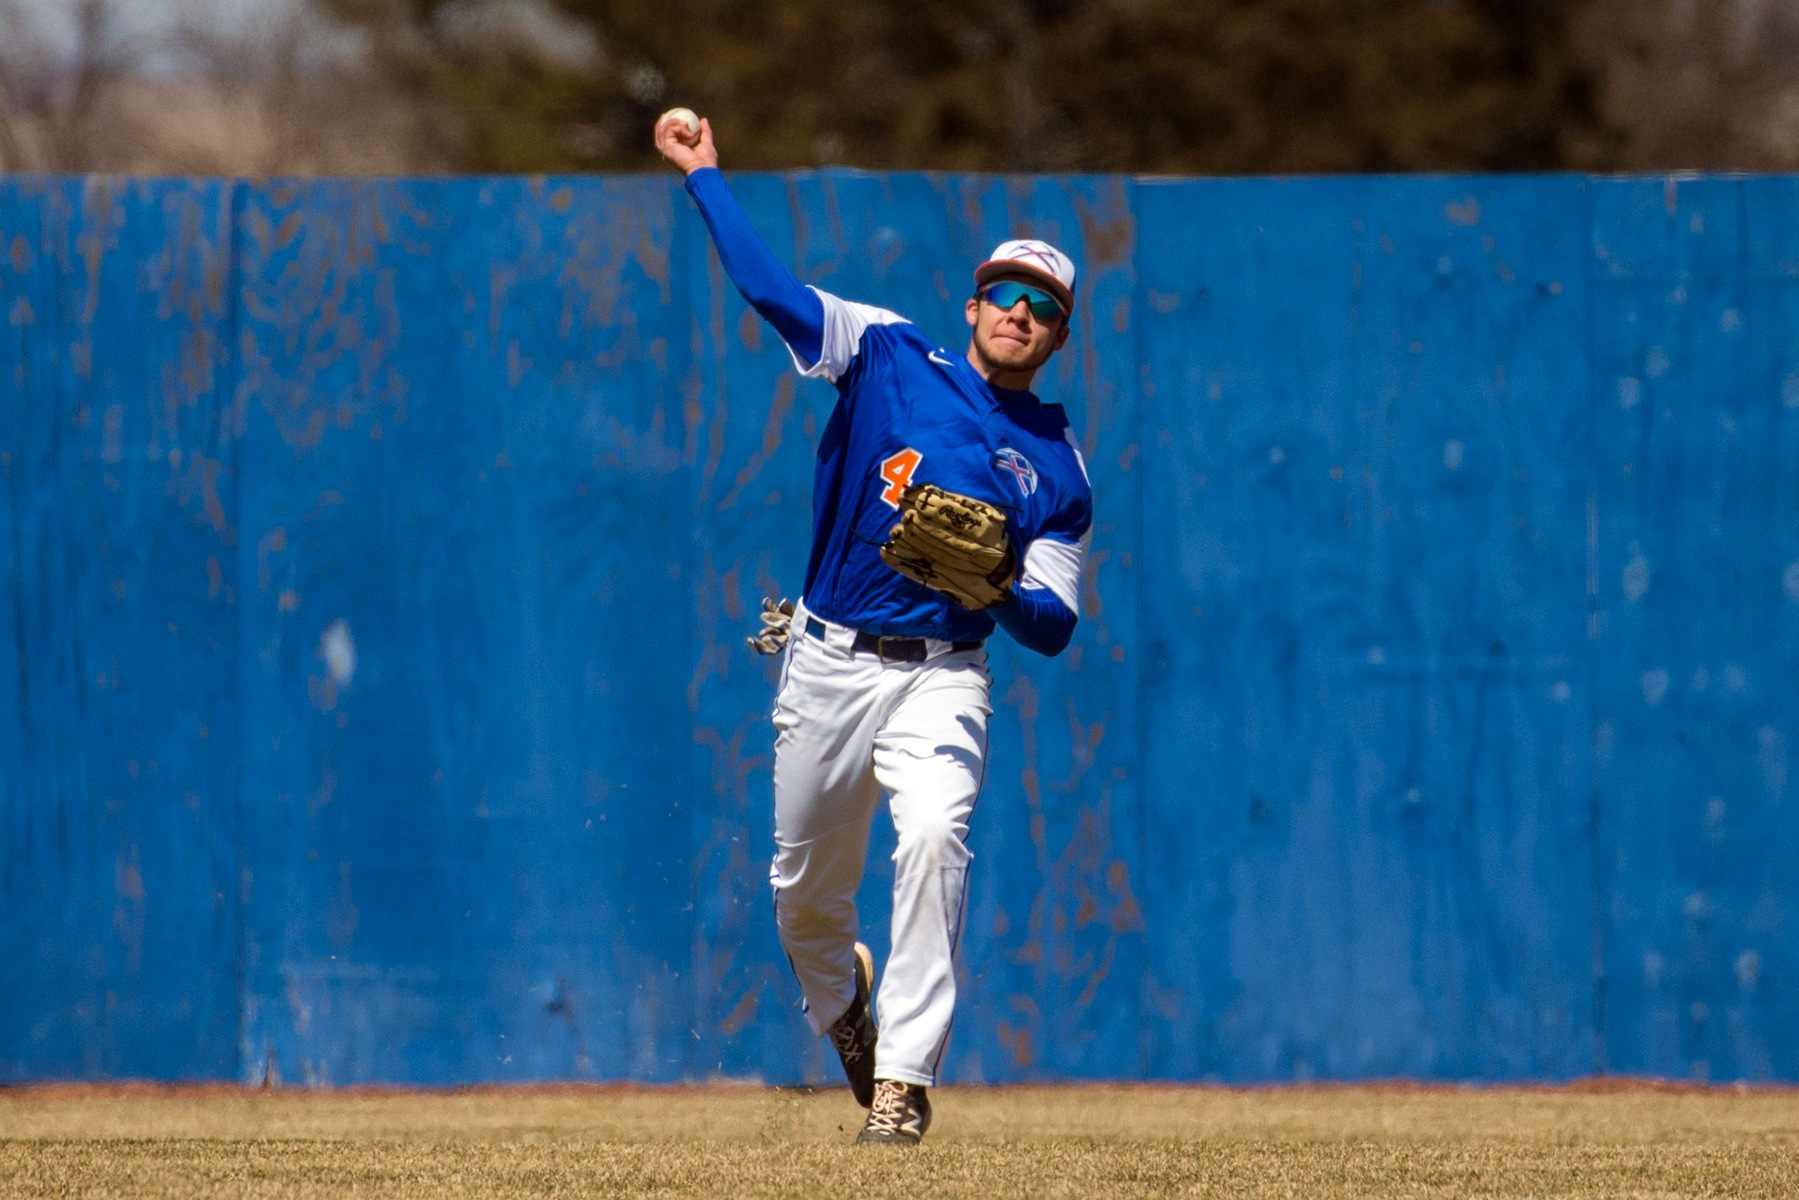 Baseball unable to overcome early deficits to Eagles